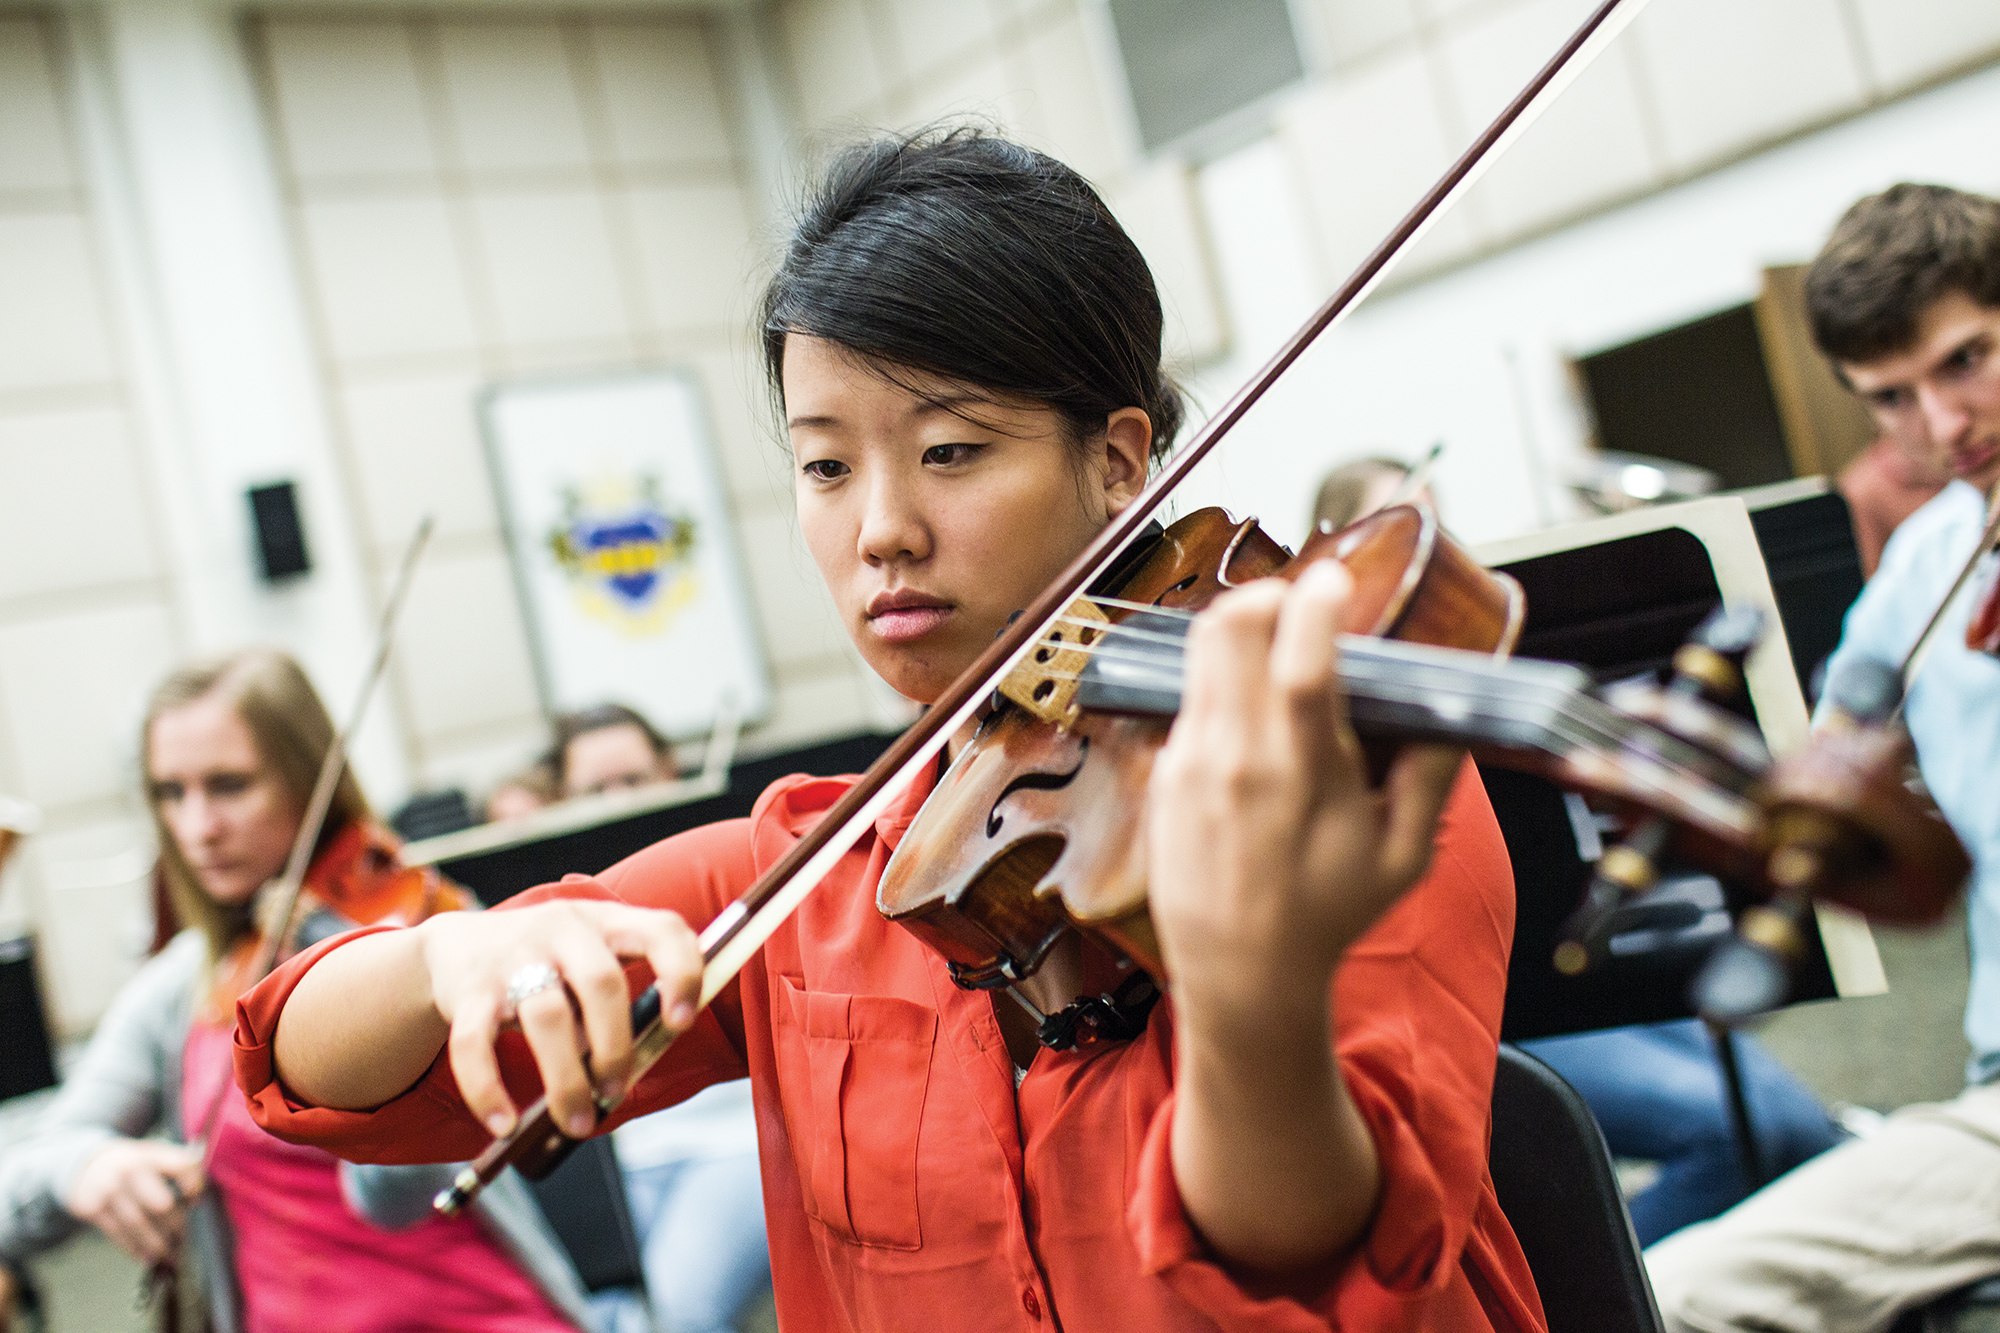 Student playing a Violin in a music class